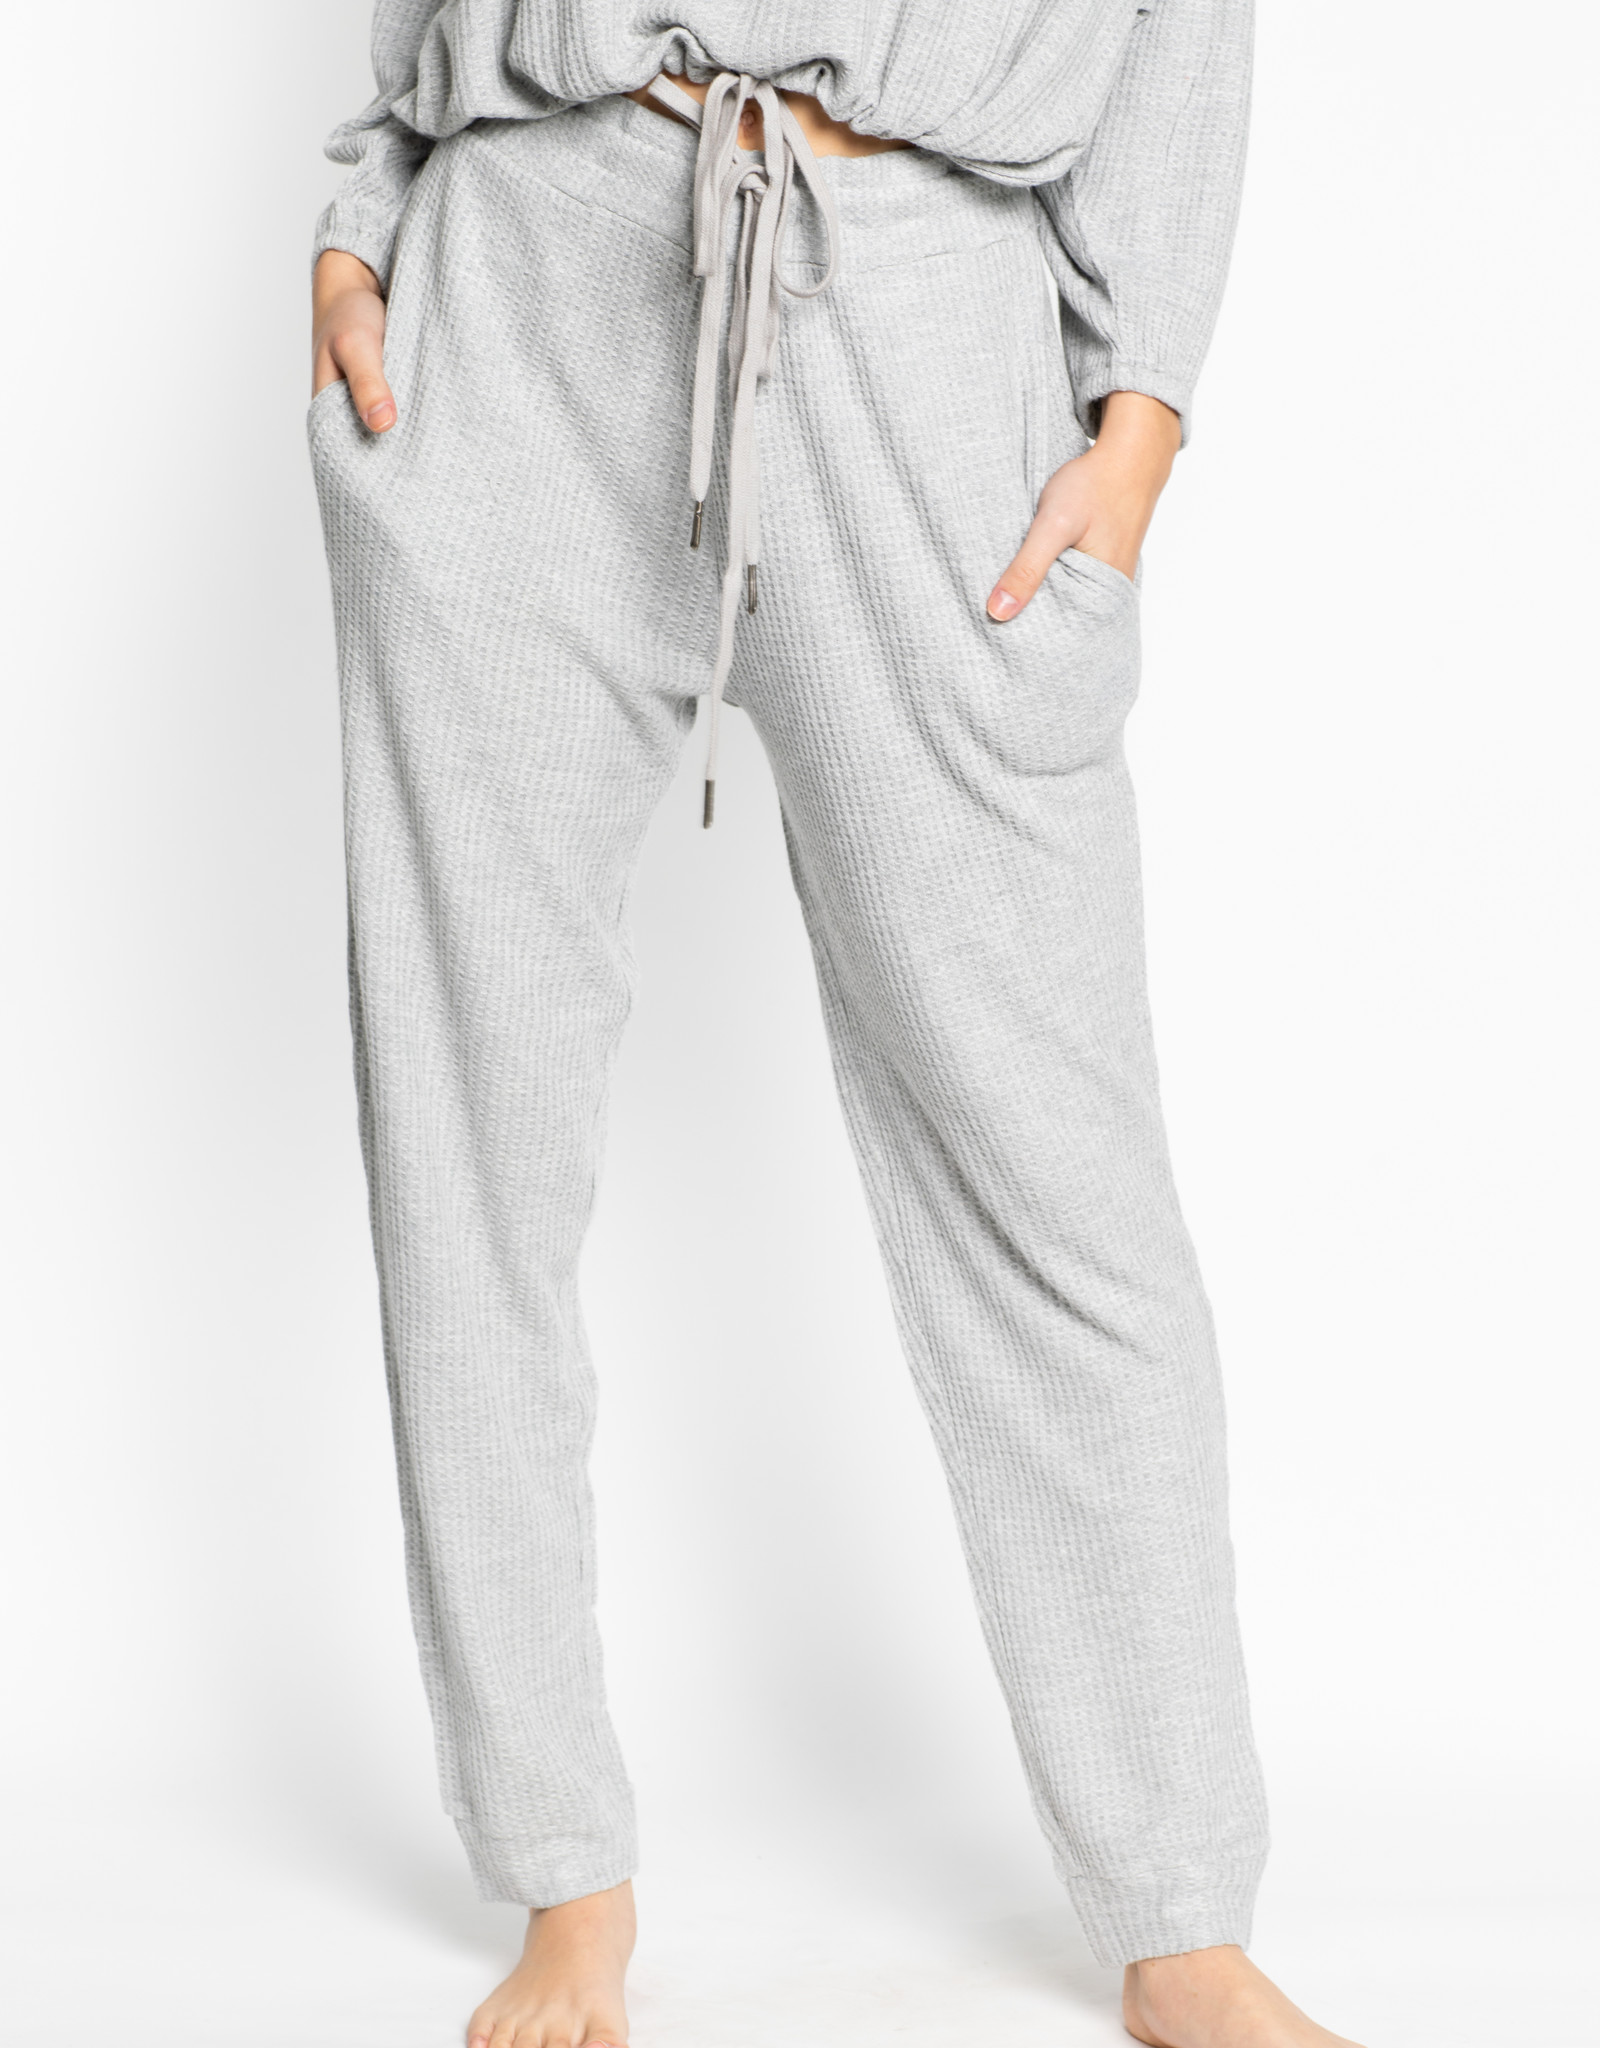 Lspace Heather Grey Venice Beach Pant